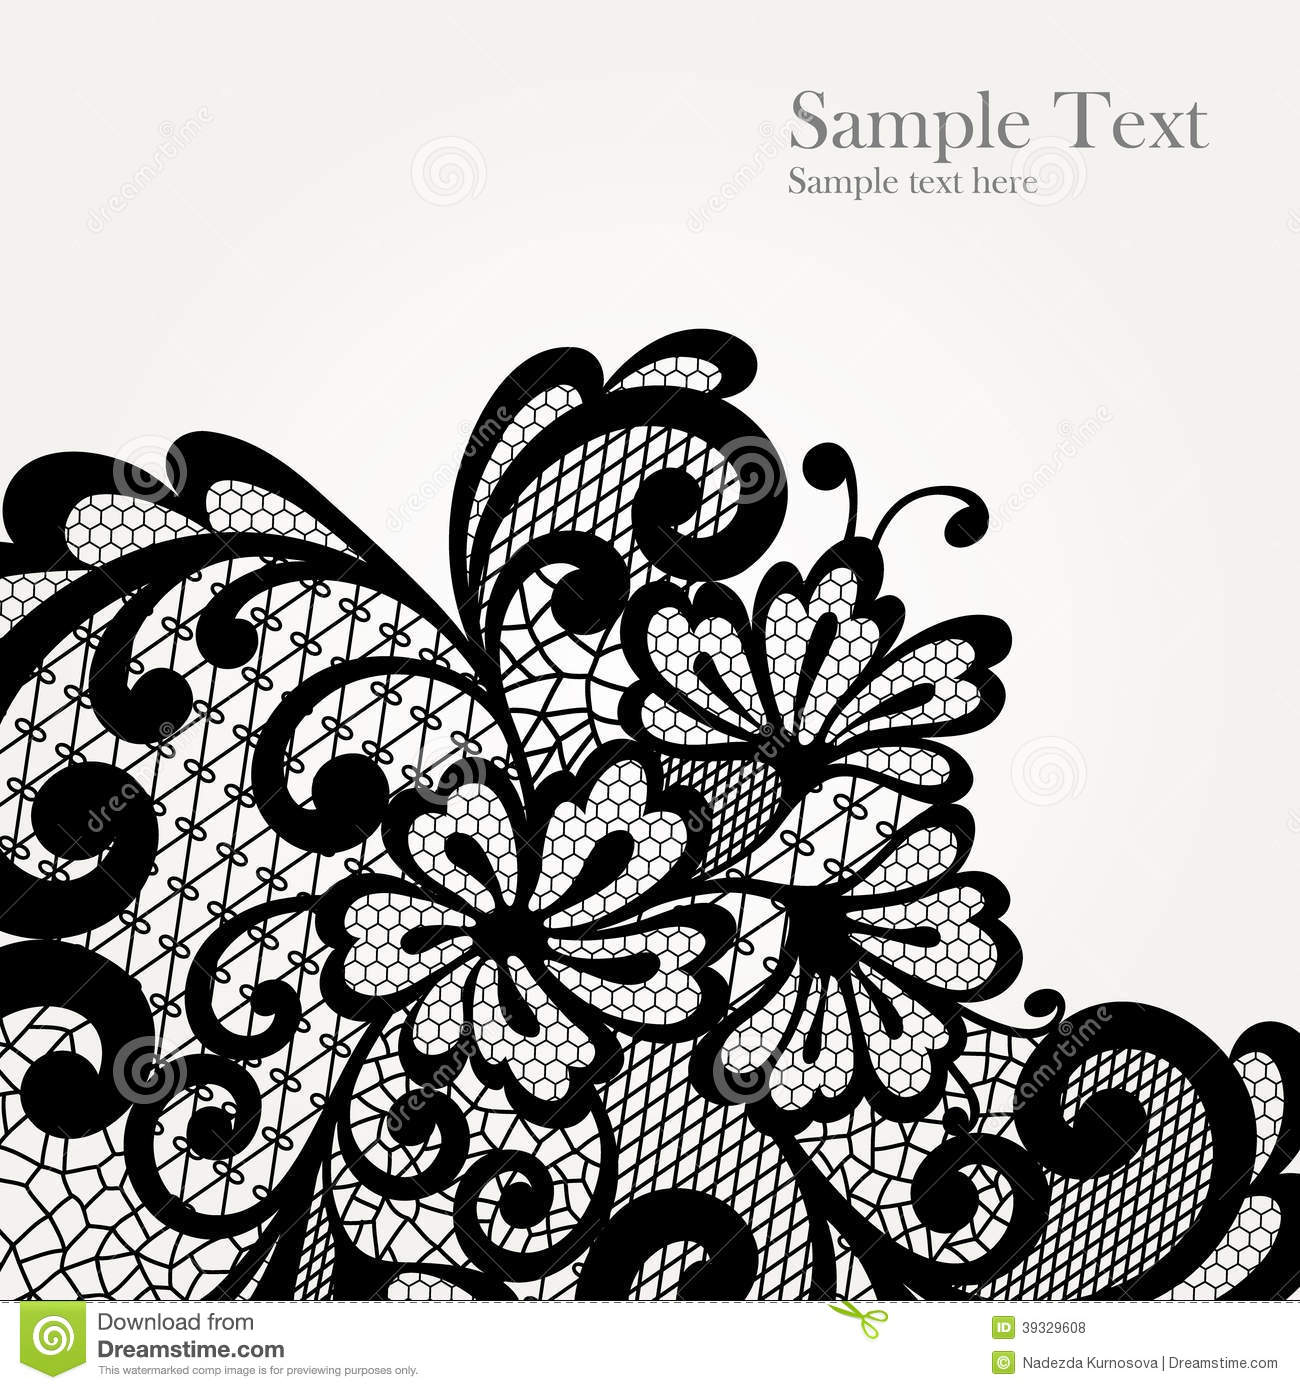 Flower Lace Tattoo Line Drawing Wiring Diagrams Circuits Gt 5 3w Amplifier With Surround System L36272 Nextgr Black Vector Corner Stock Image 39329608 And Rose Filigree